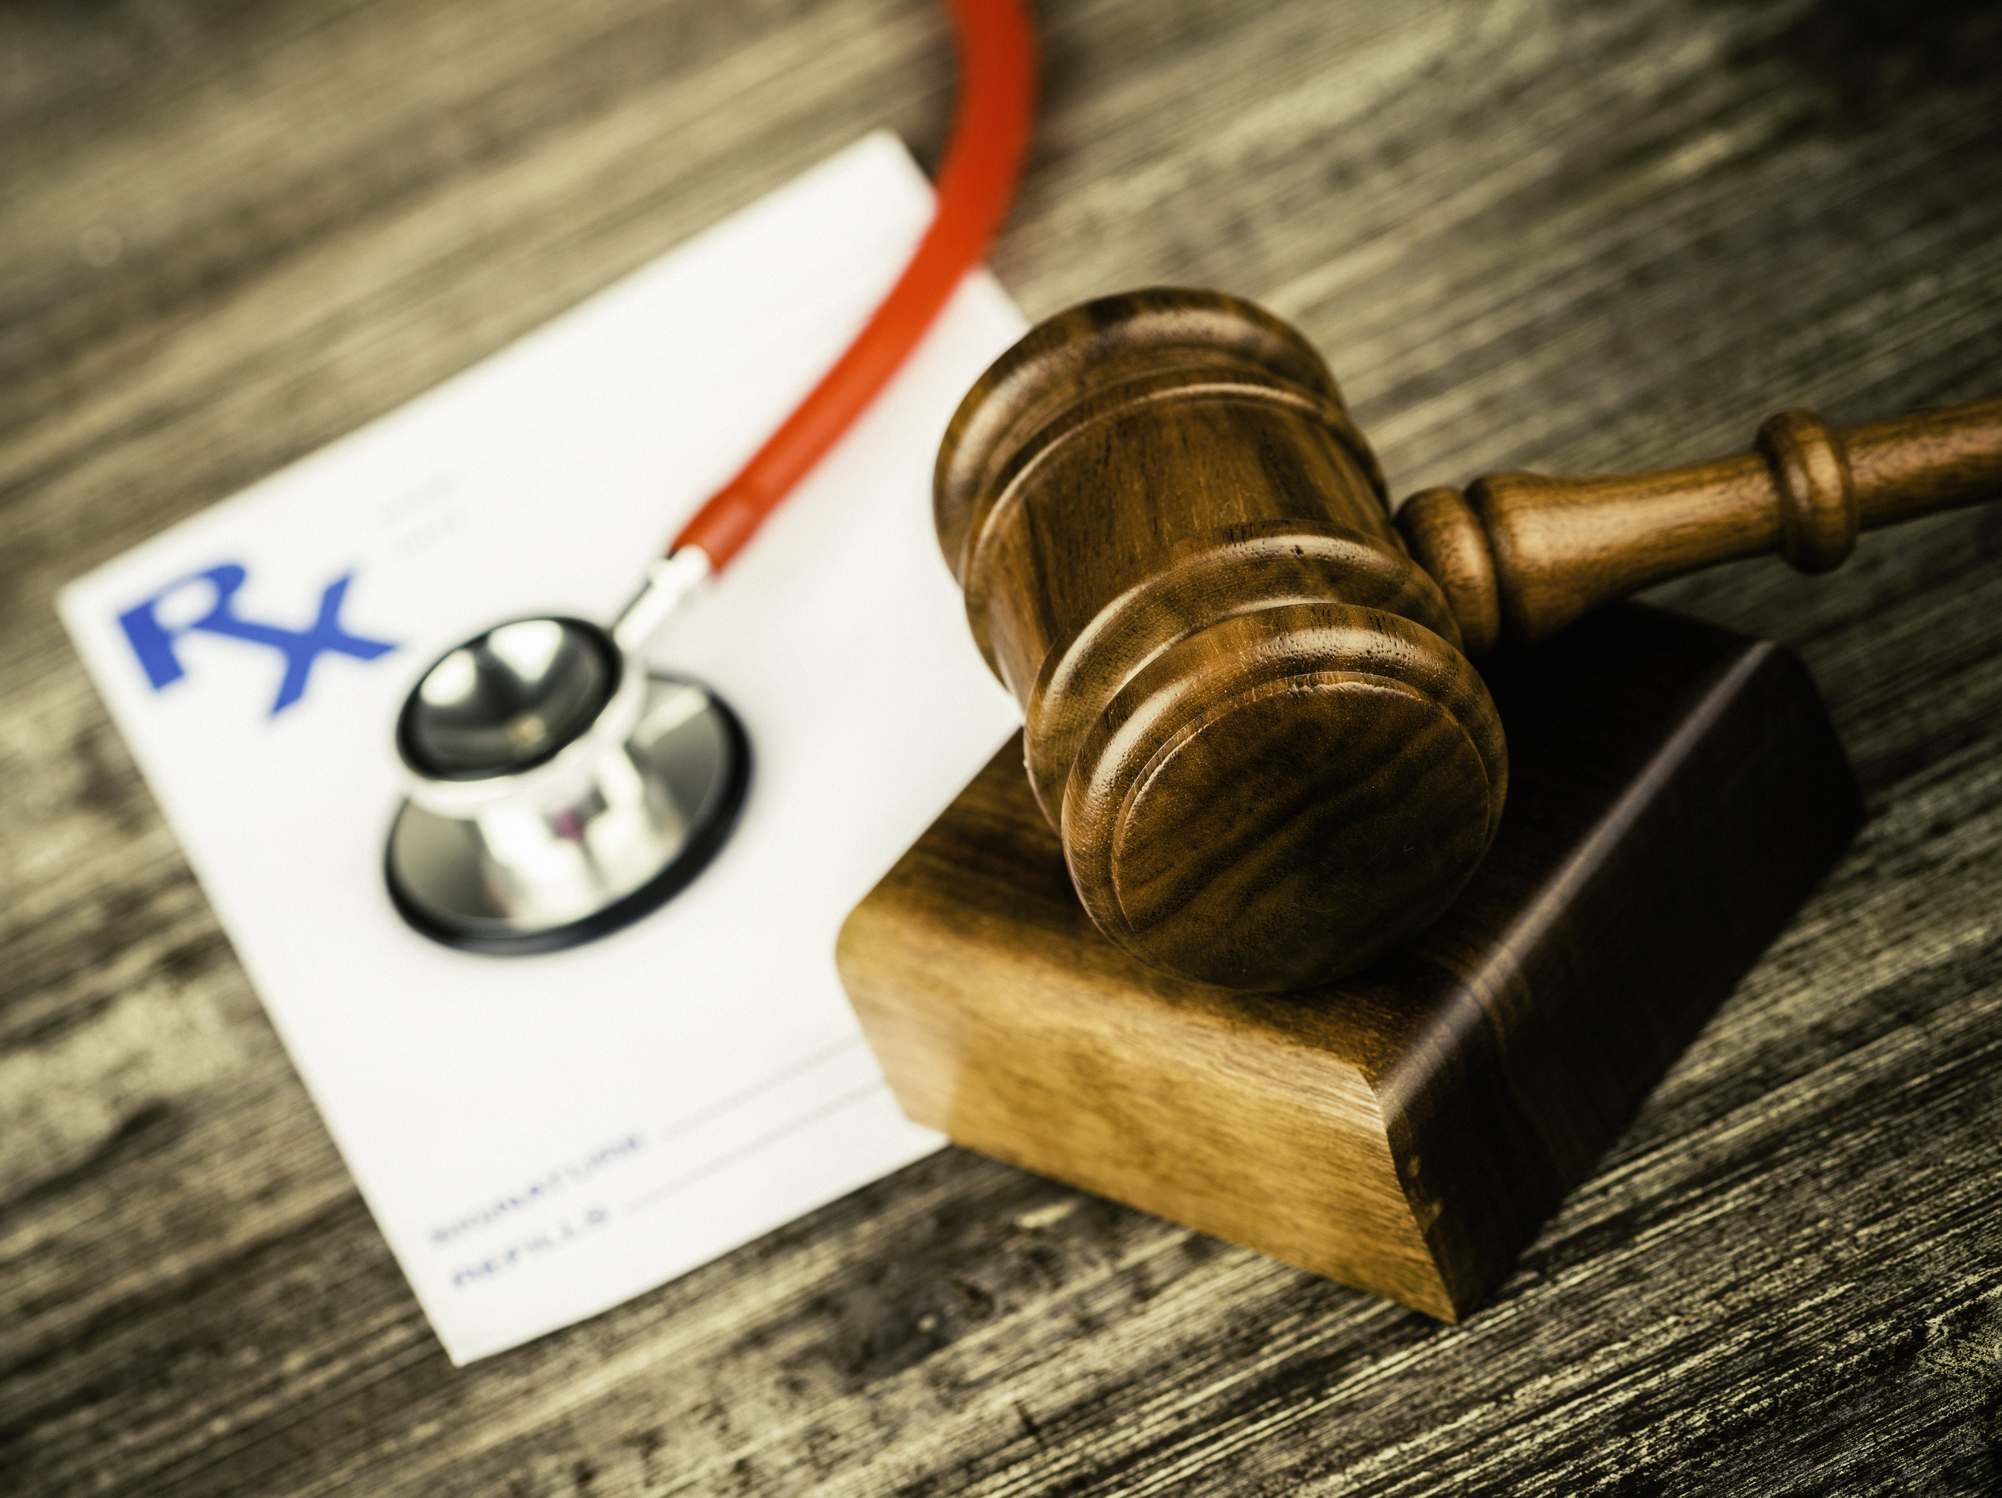 Prescription form with stethoscope and gavel. Medical Malpractice.